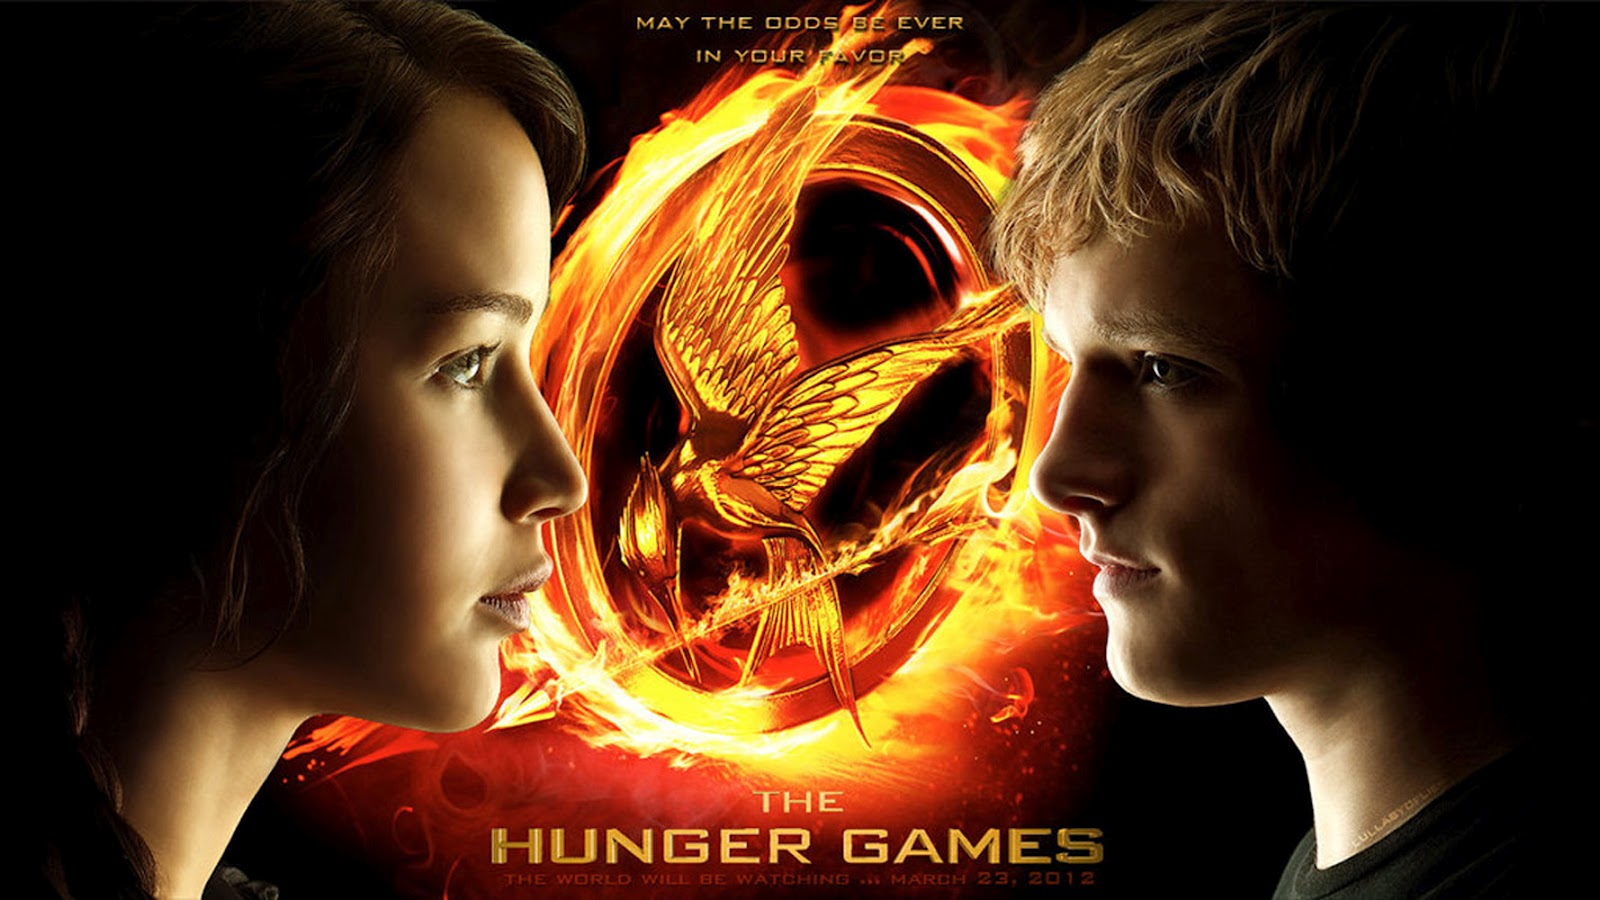 The Hunger Games (2012) mistakes